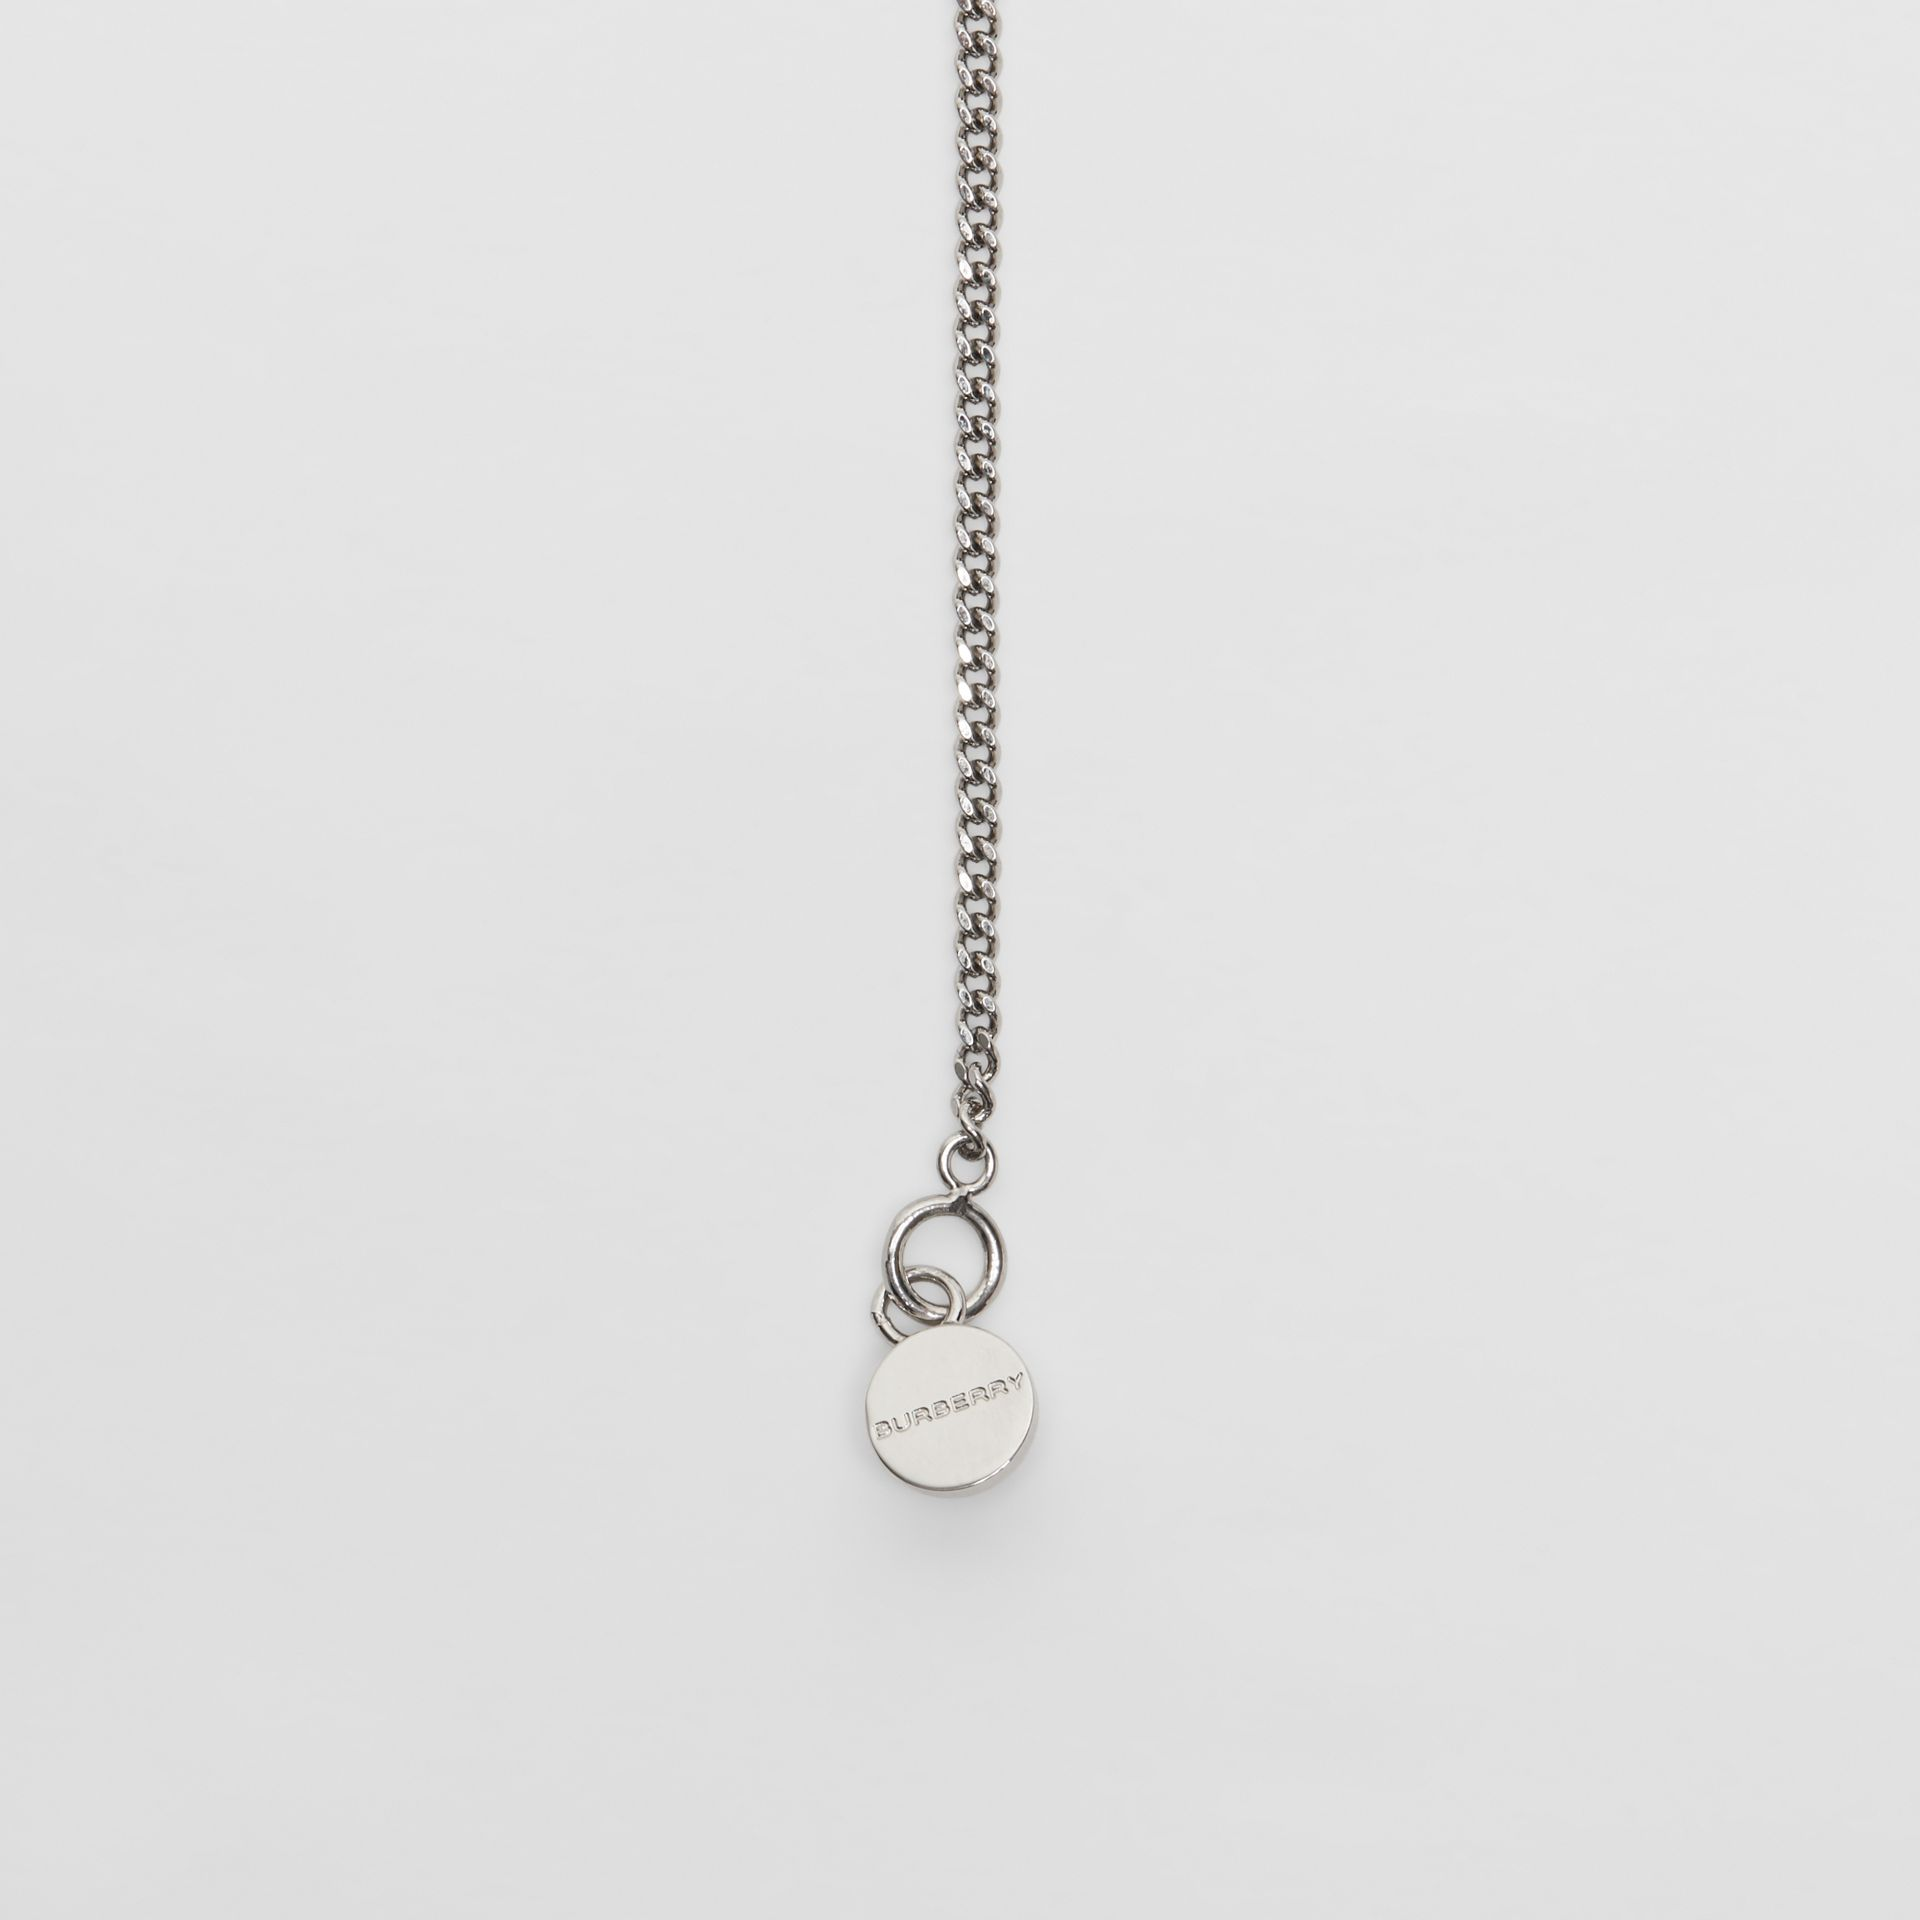 Palladium-plated Chain Necklace in Palladio - Women | Burberry United States - gallery image 1